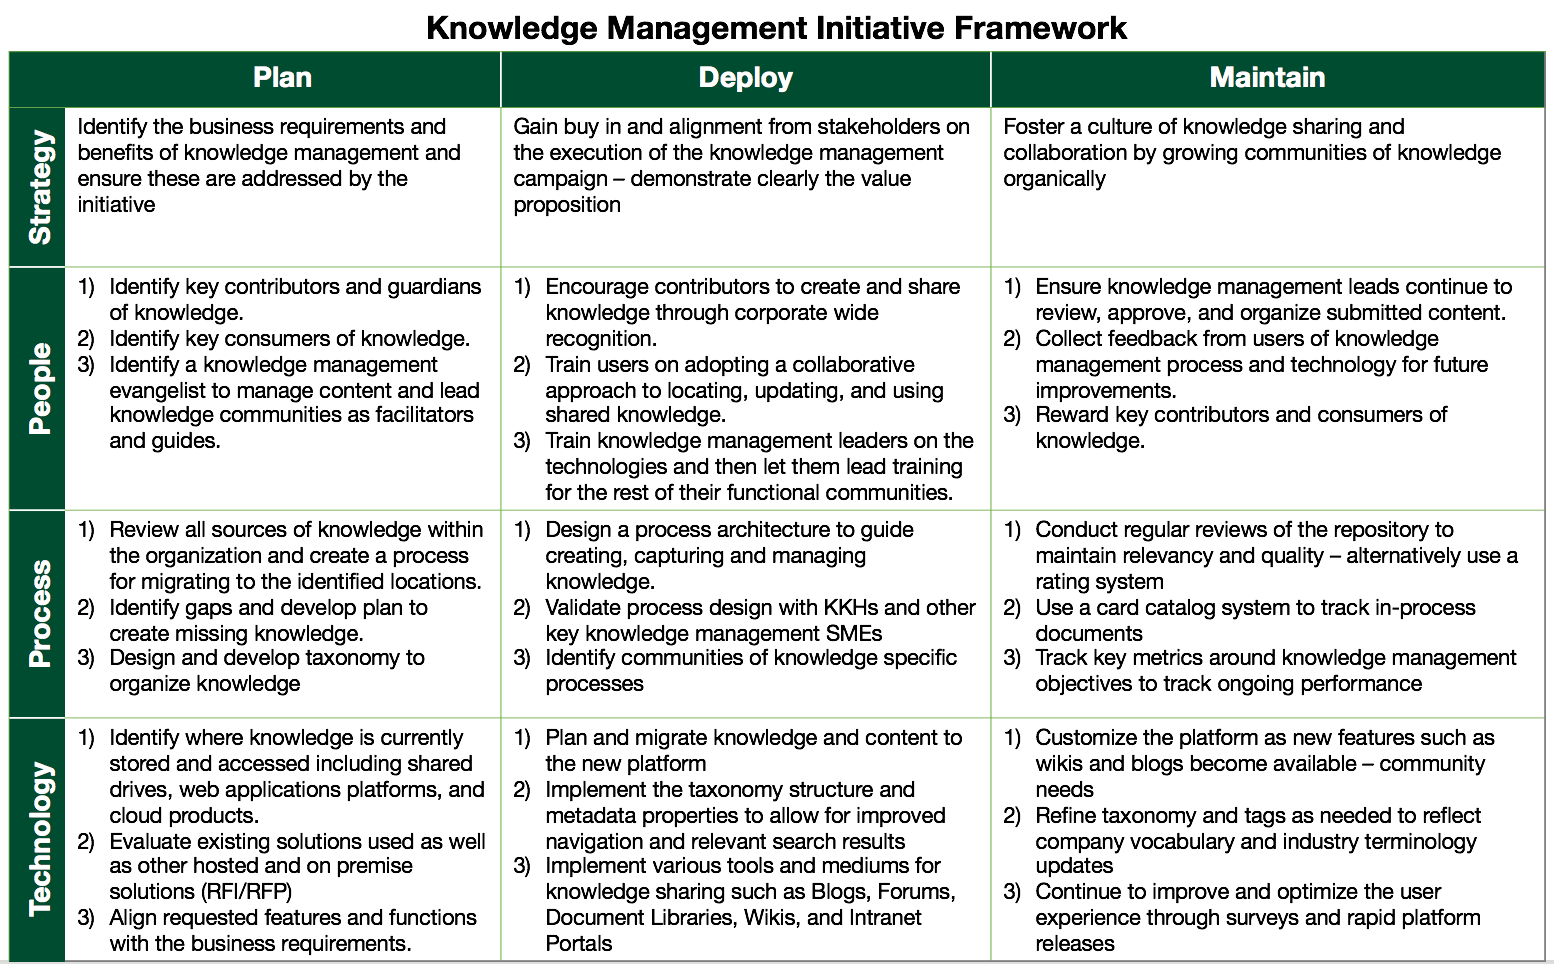 Addressing the Challenges of Knowledge Management